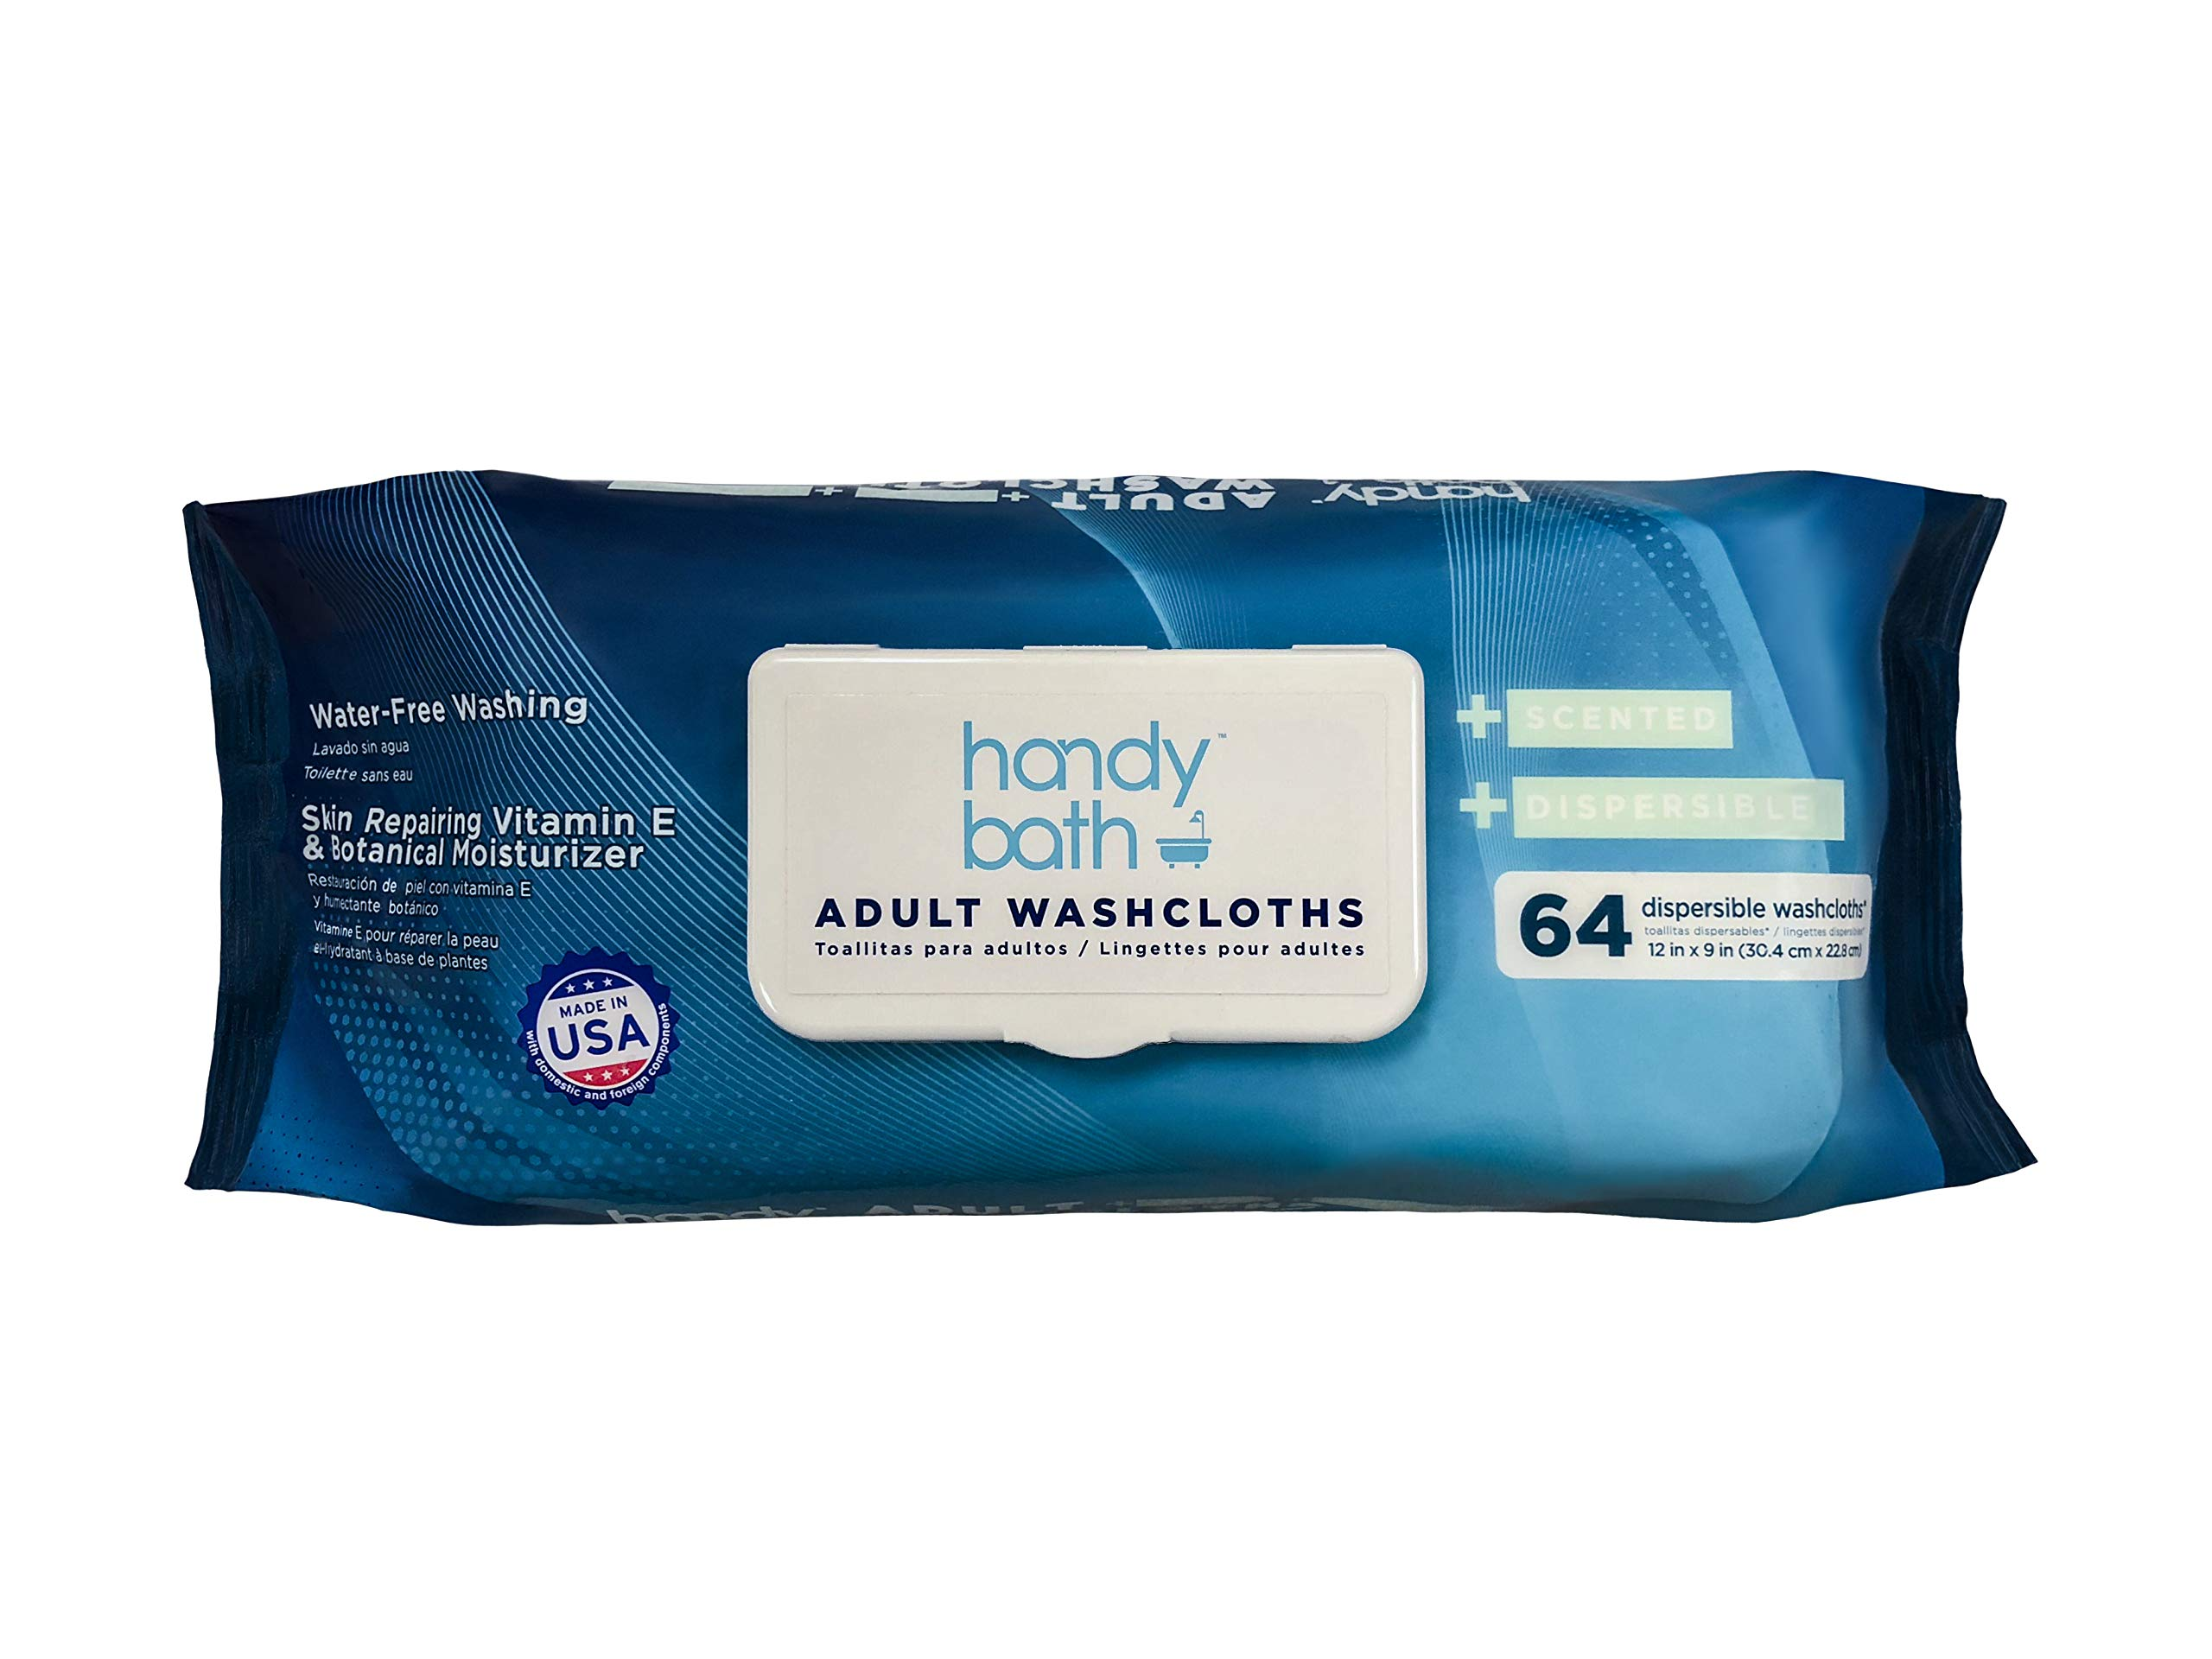 """Handybath Incontinence Flushable Adult Washcloths 100% Biodegradable with Fresh Scent- Extra Large 12 x 9"""" Towels - Personal Cleaning Wipes with Aloe & Chamomile - Rinse Free & Flushable - 64 ct Pack"""